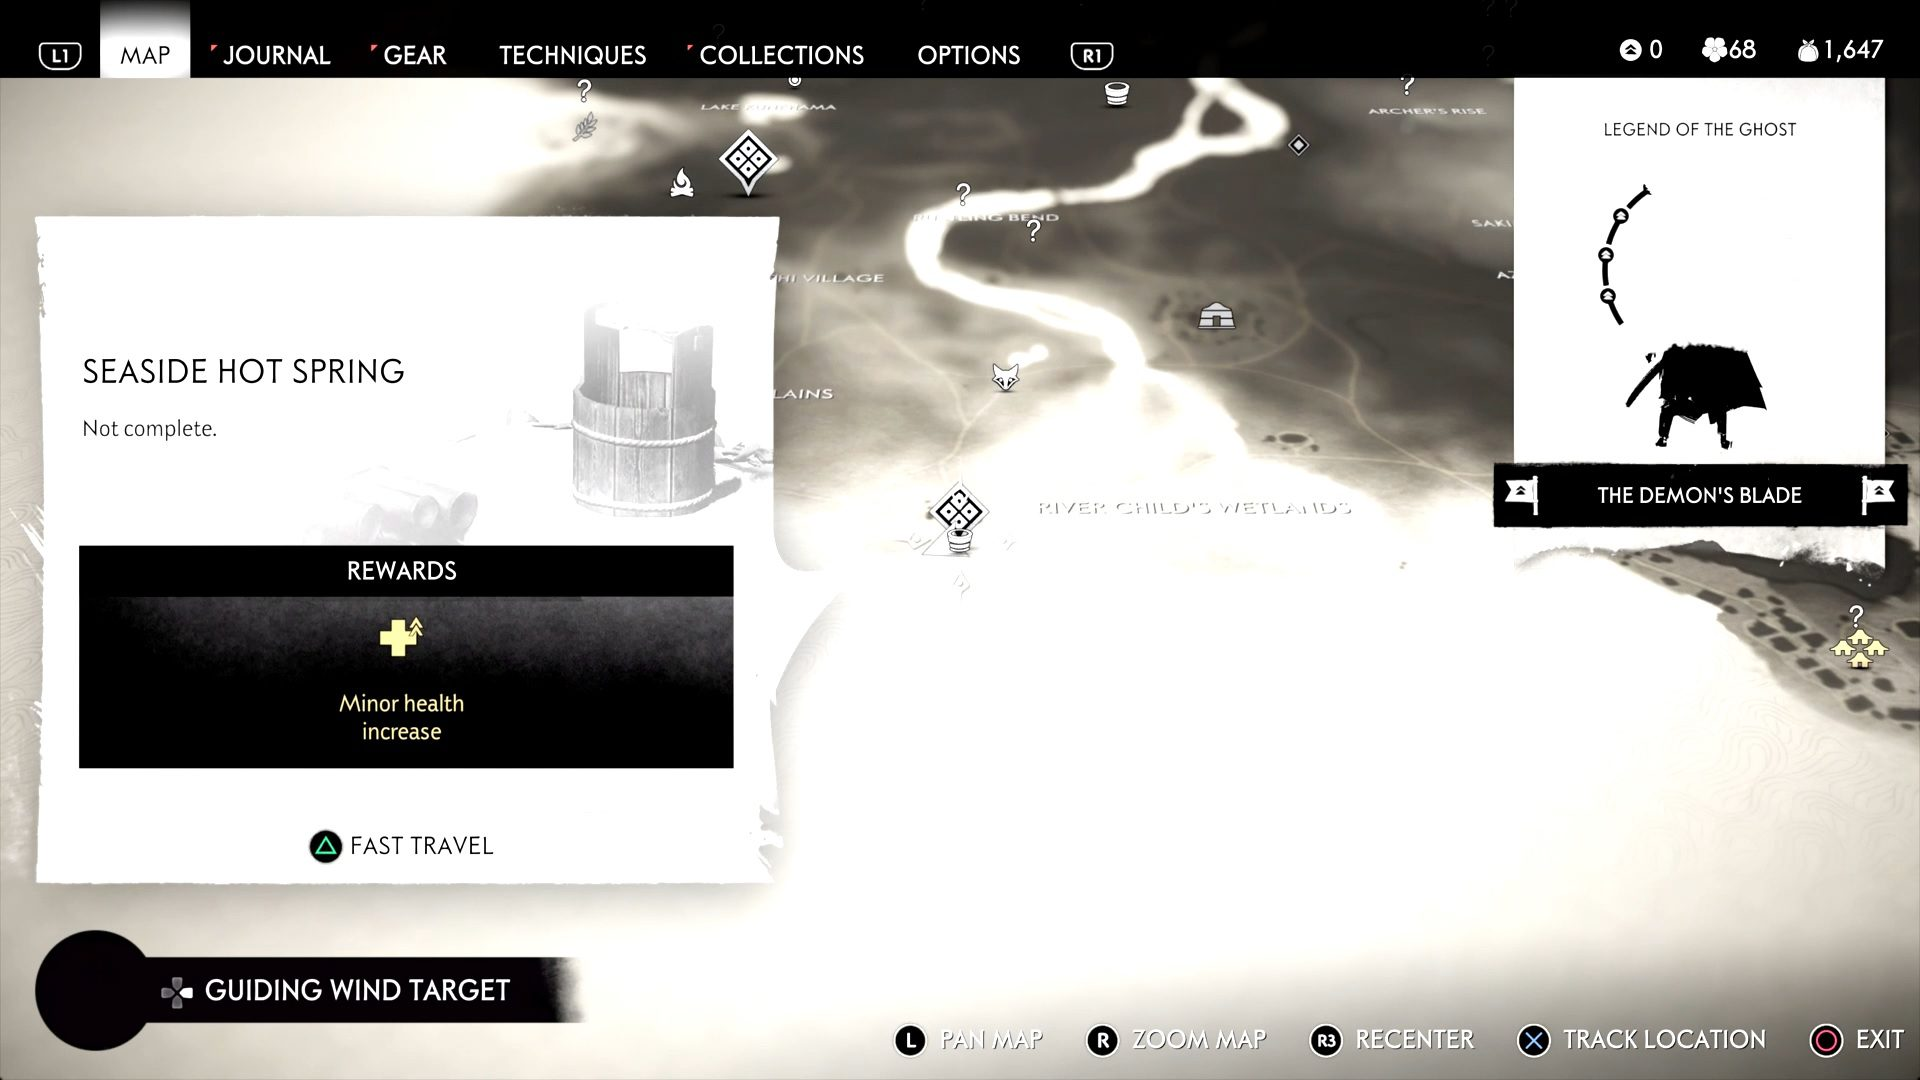 Ghost of Tsushima Seaside Hotspring Location Guide